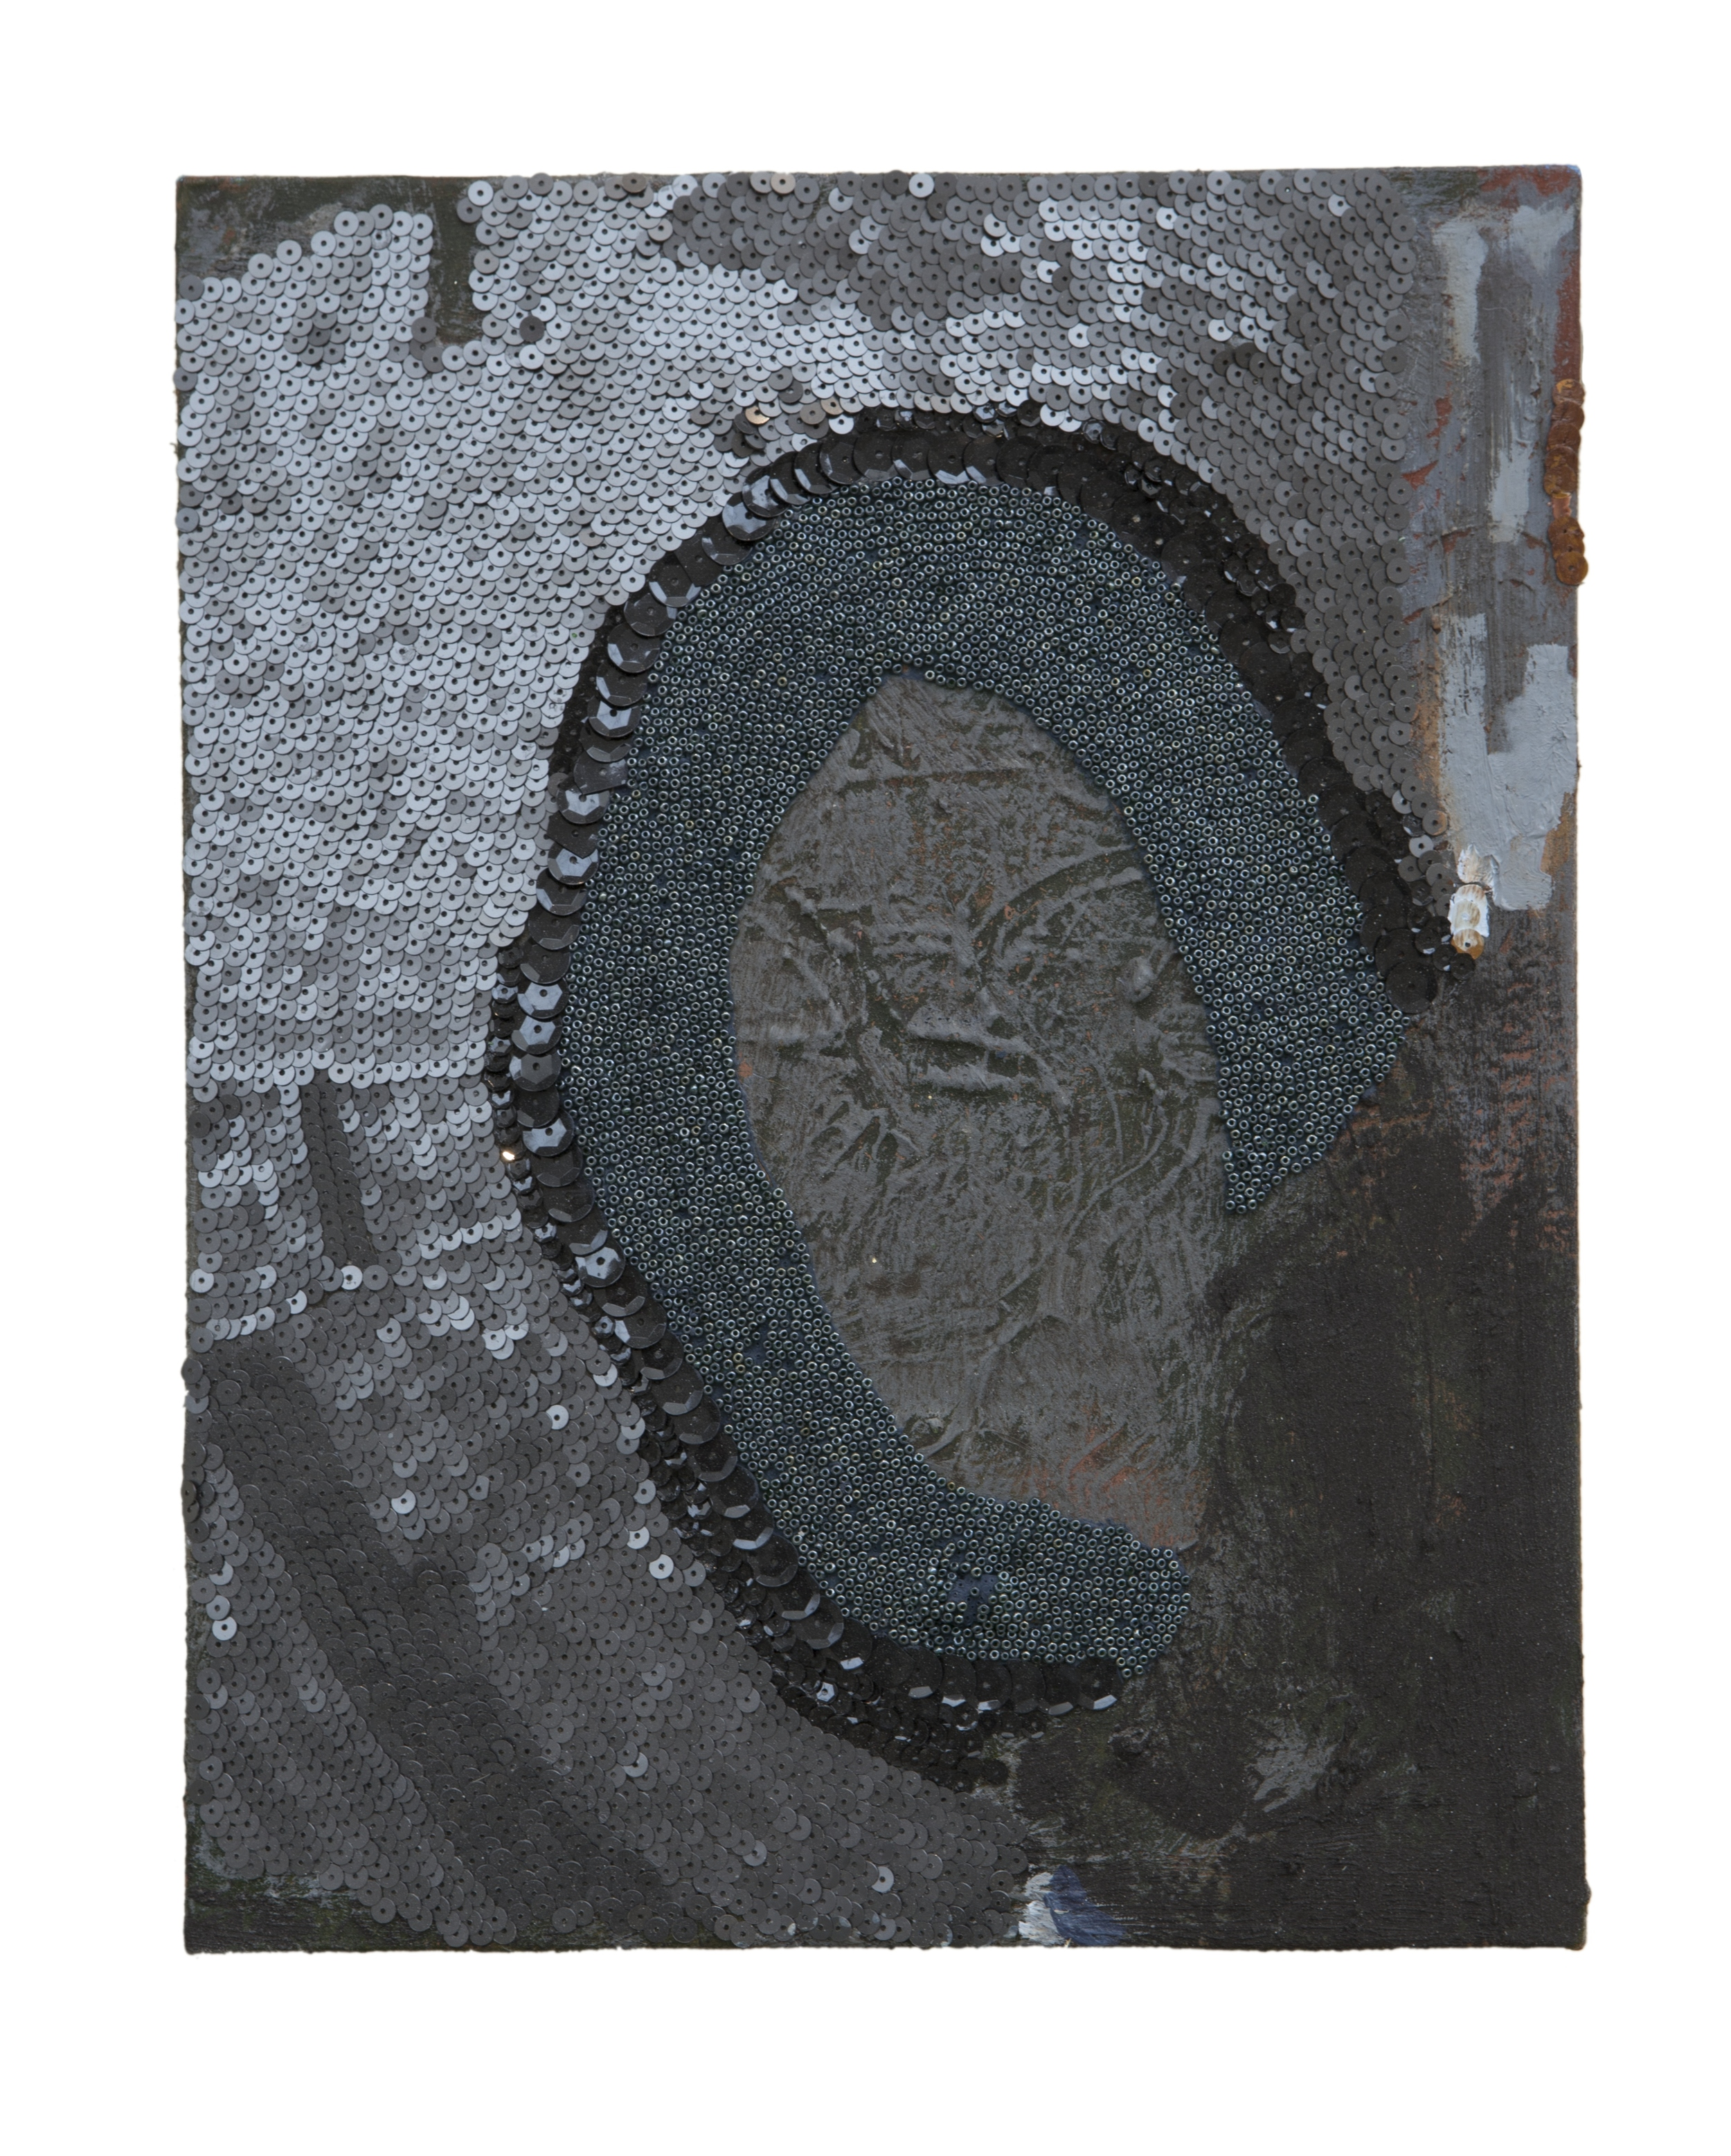 "Alphabets and Earth: South Africa, mixed media, 14"" by 11"", 2014-2015."